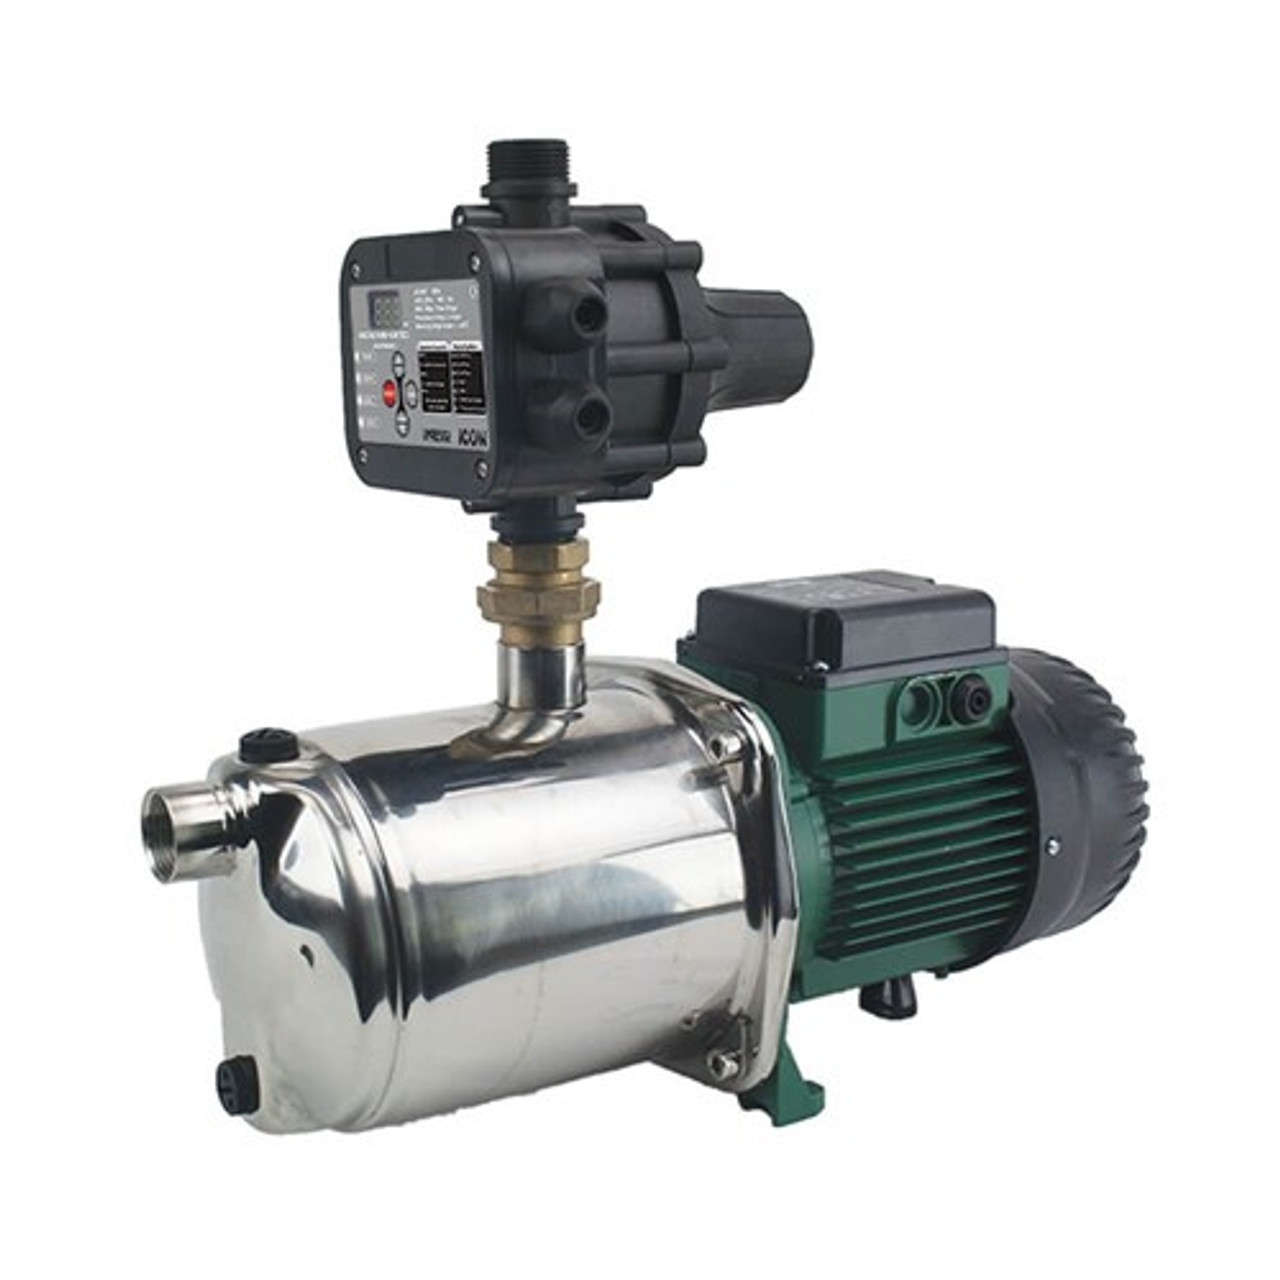 Dab Euroinox 40/80 Automatic Pressure Pump with s/steel pump and suction lift to 5m deep.   40 L/min @ 540 kPa to 100 L/min @ 290 kPa.